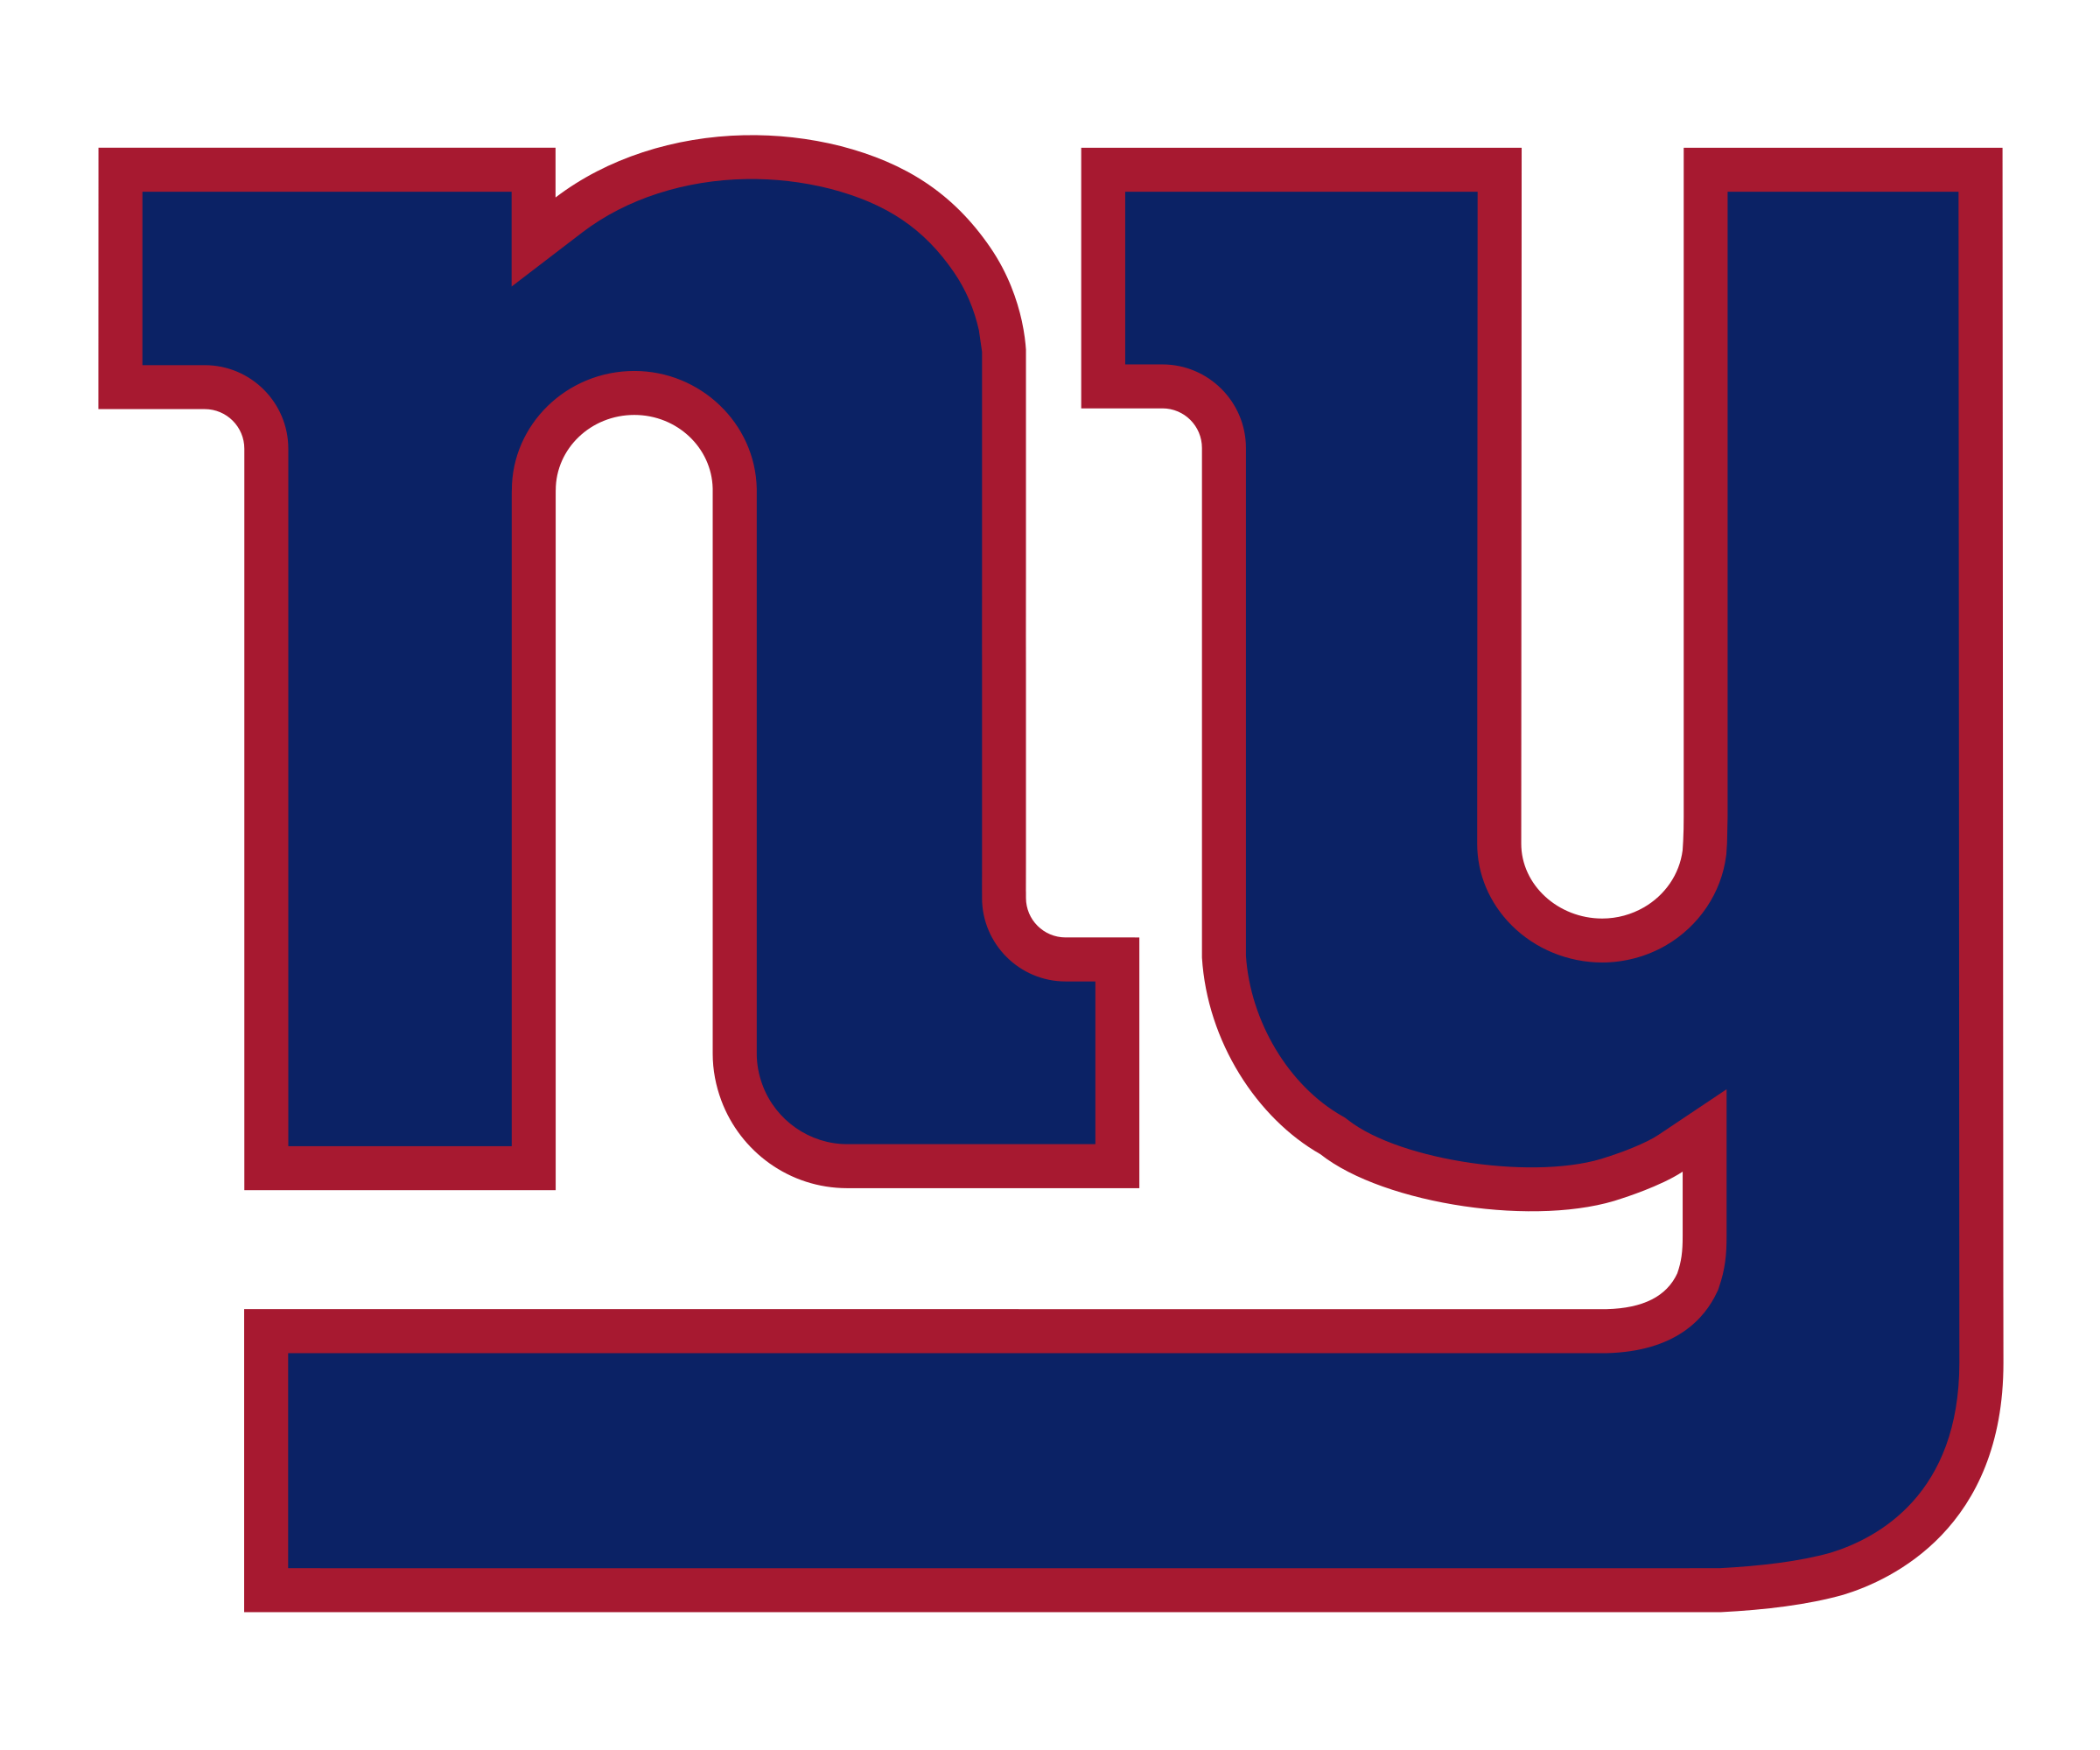 New york giants football helmet clipart clip royalty free stock New York Giants Logo PNG Transparent & SVG Vector - Freebie Supply clip royalty free stock